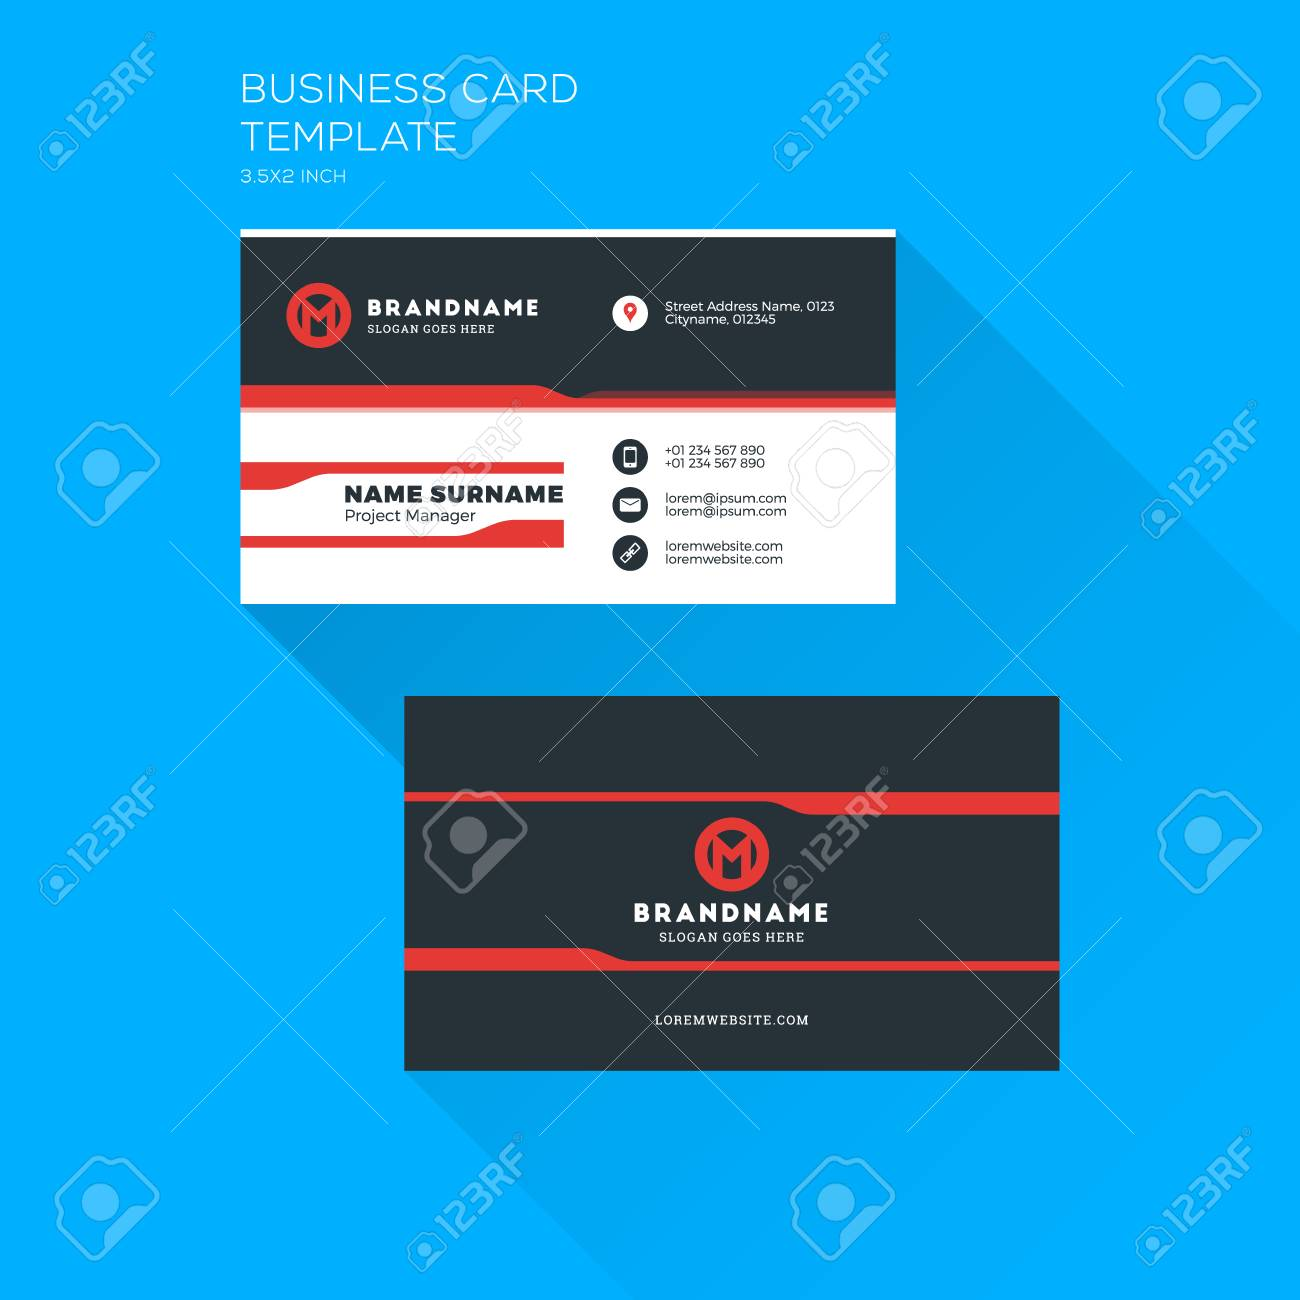 Corporate business card print template personal visiting card corporate business card print template personal visiting card with company logo clean flat stationery flashek Image collections